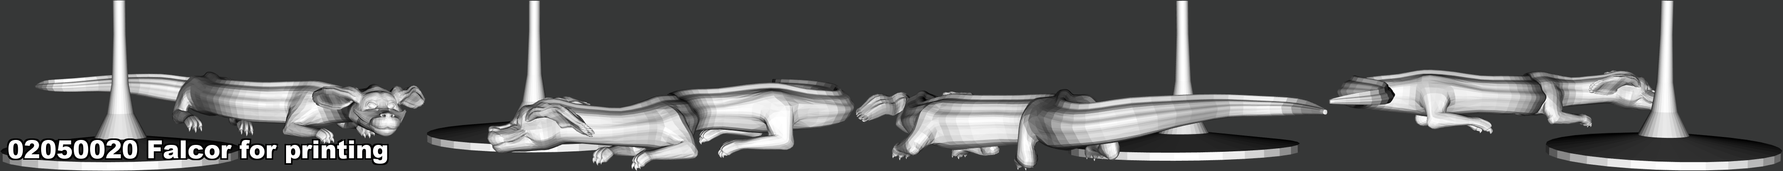 02050020 Falcor for printing.png